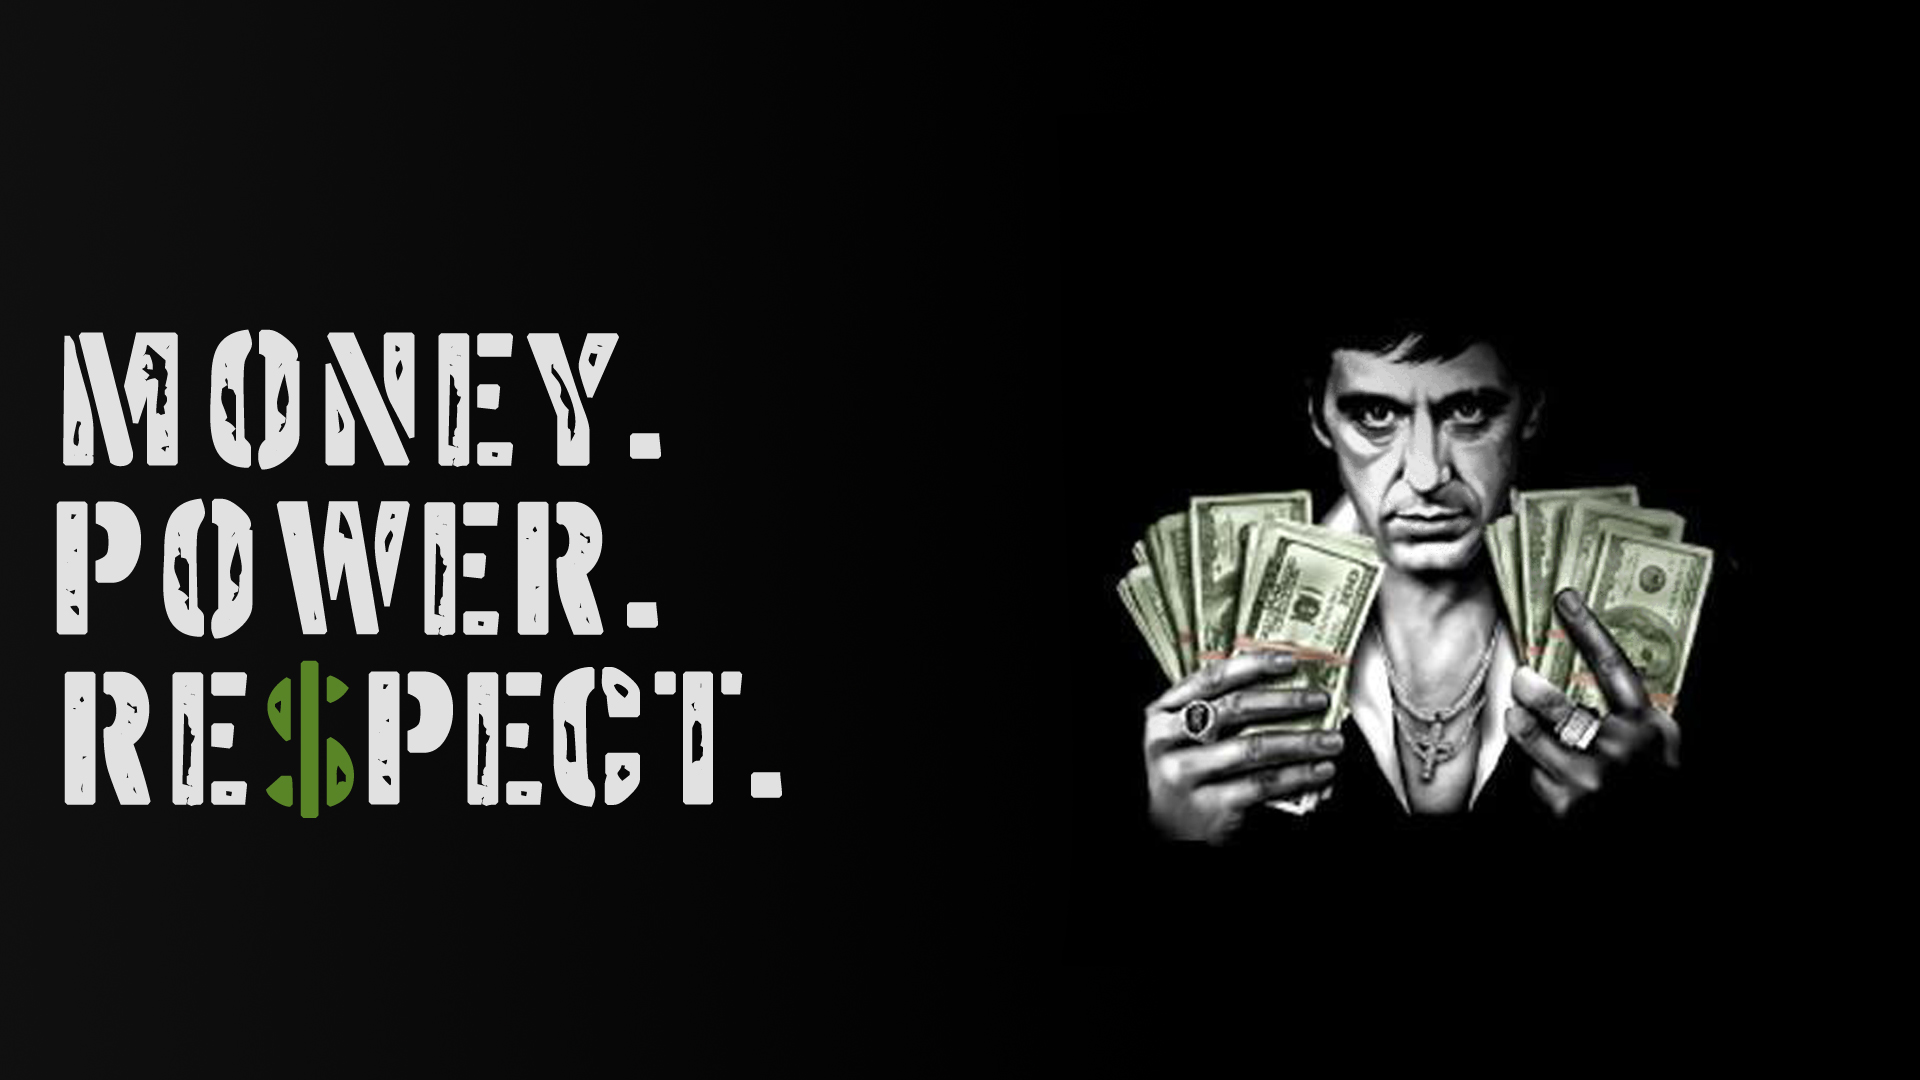 scarface quotes wallpaper by veeradesigns customization wallpaper 1920x1080